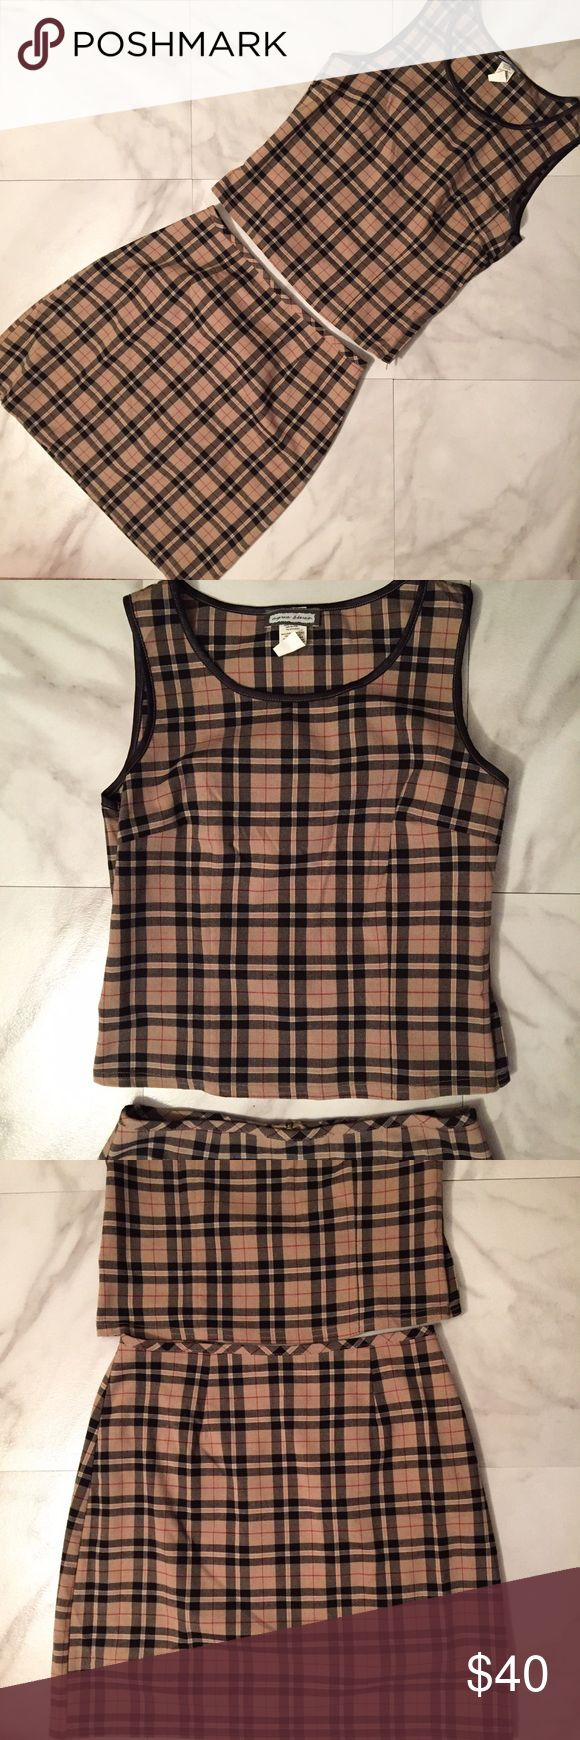 Adorable 90s Matching Plaid Skirt Set!! Absolutely adorable 90s plaid skirt and sleeveless crop top set! Major Clueless vibes with this one!! Top and skirt both have zippers! Not see through! I'm a size 8 and this fits me great! The tag size is a junior's size 9! Skirt waist measurement is 28 inches! Please feel free to ask questions! Vintage Skirts Mini